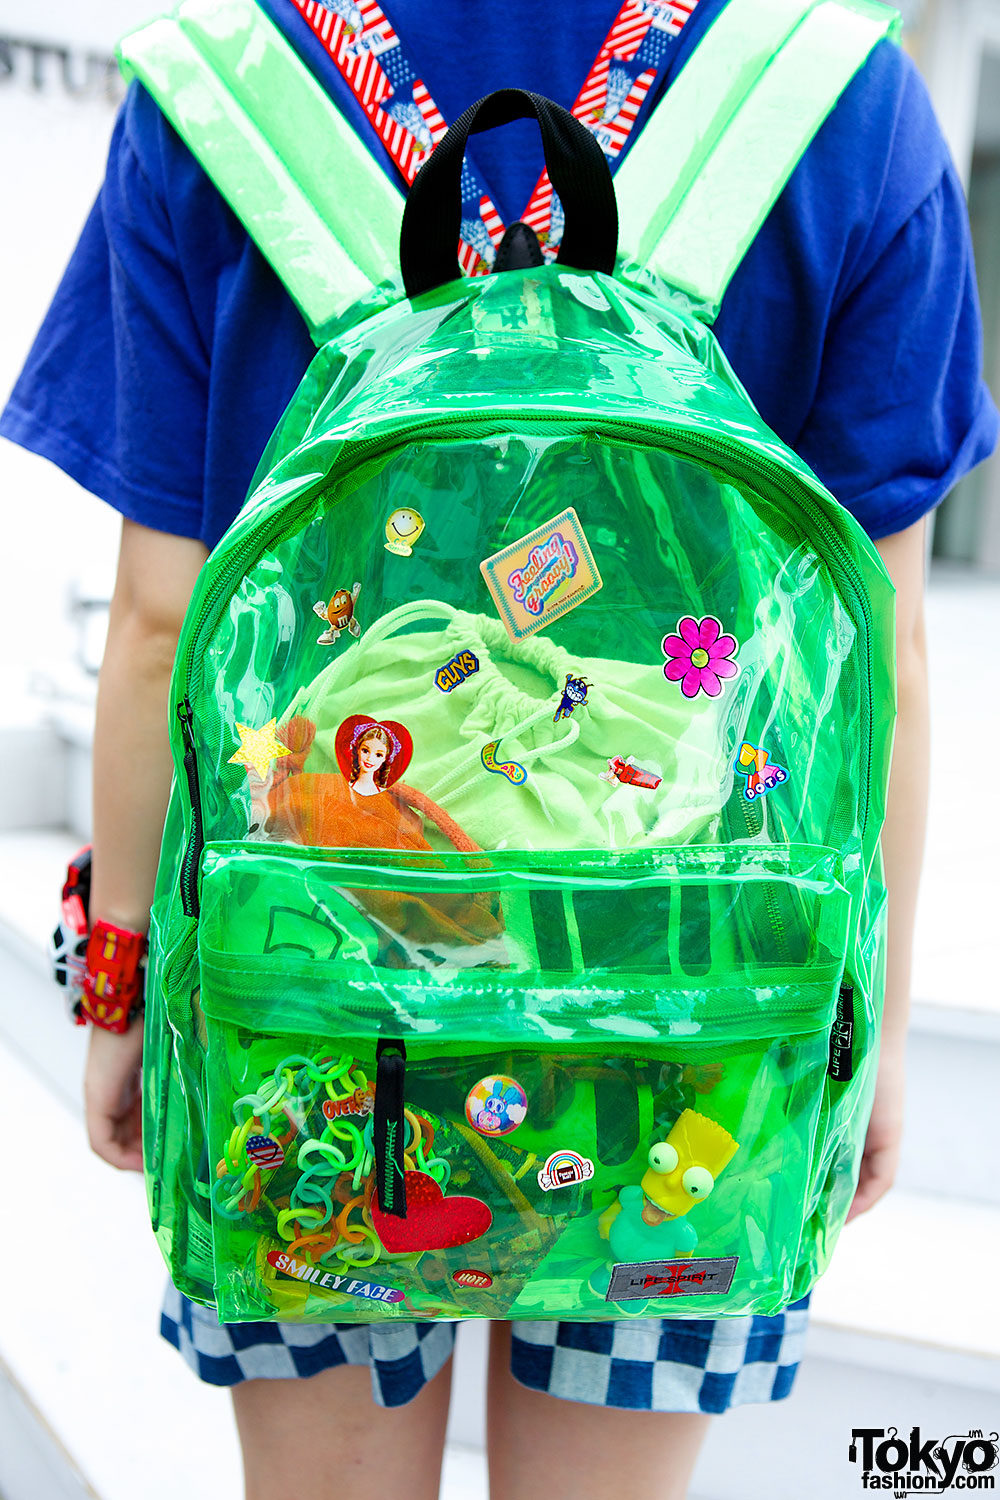 Japanese Car Brands >> Clear Backpack, Twintails, Rainbow Platforms & Toy Car Bracelet in Harajuku